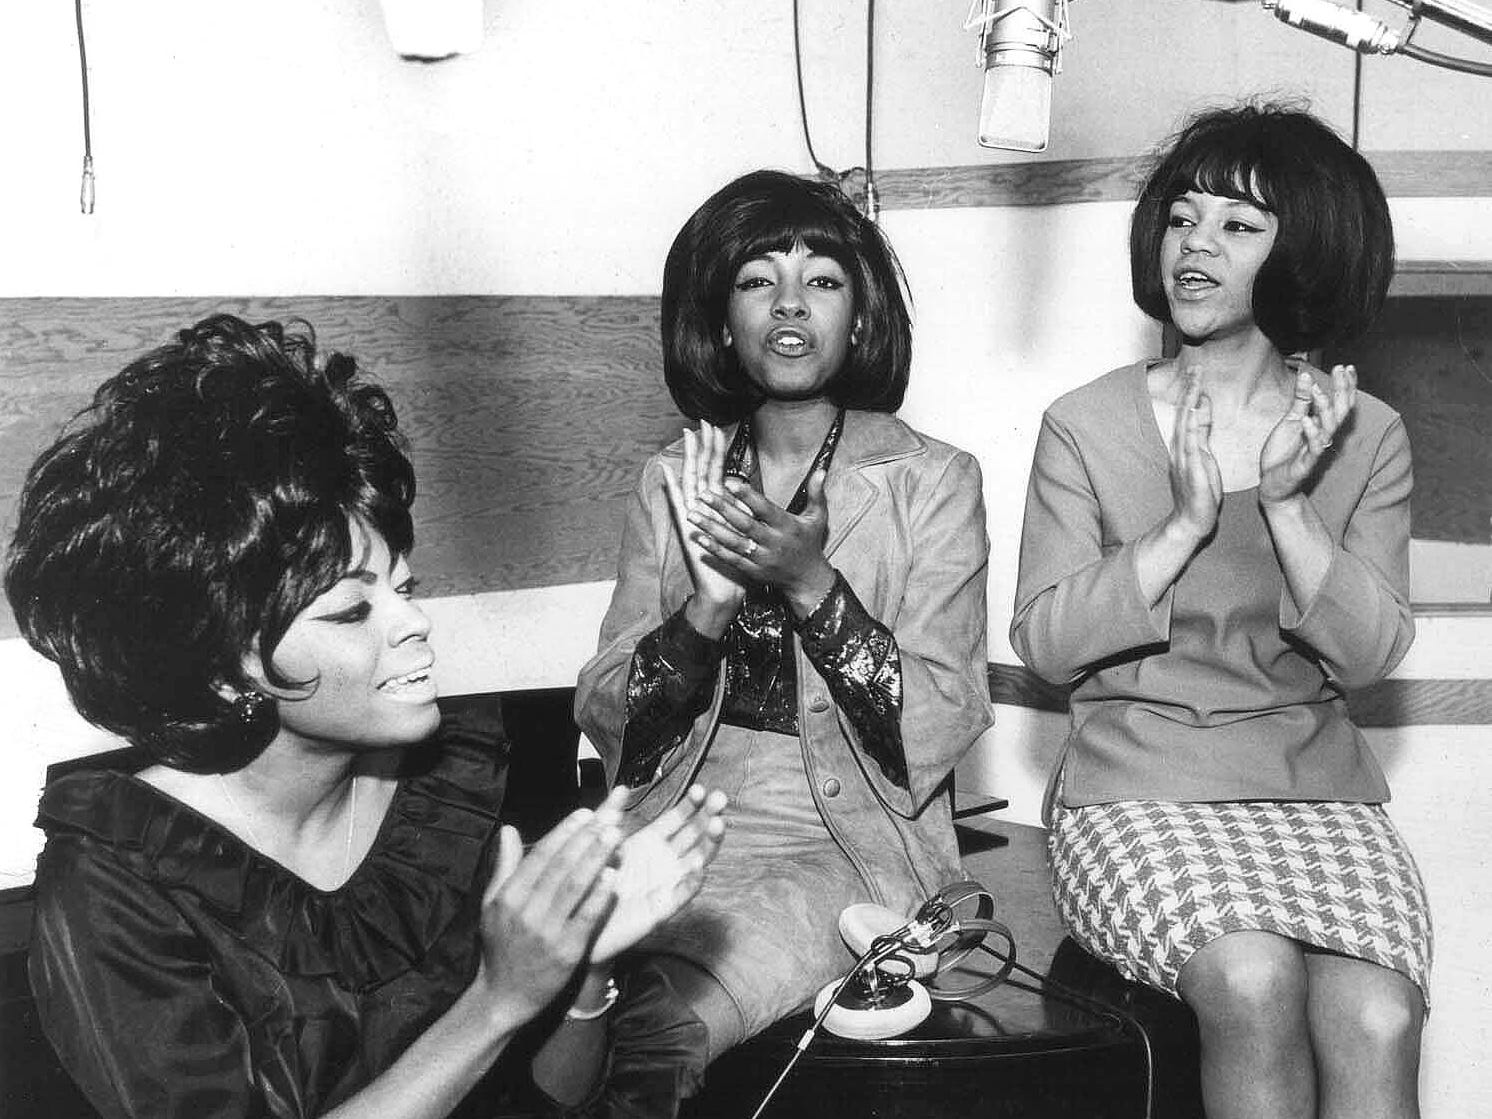 Diana Ross, left, and fellow Supremes Mary Wilson and Florence Ballard were one of Motown's signature acts,  recording 12 No. 1 hits between 1964 and 1969. Many of the songs were written and produced by Motown's premier songwriting and production team, Holland-Dozier-Holland.